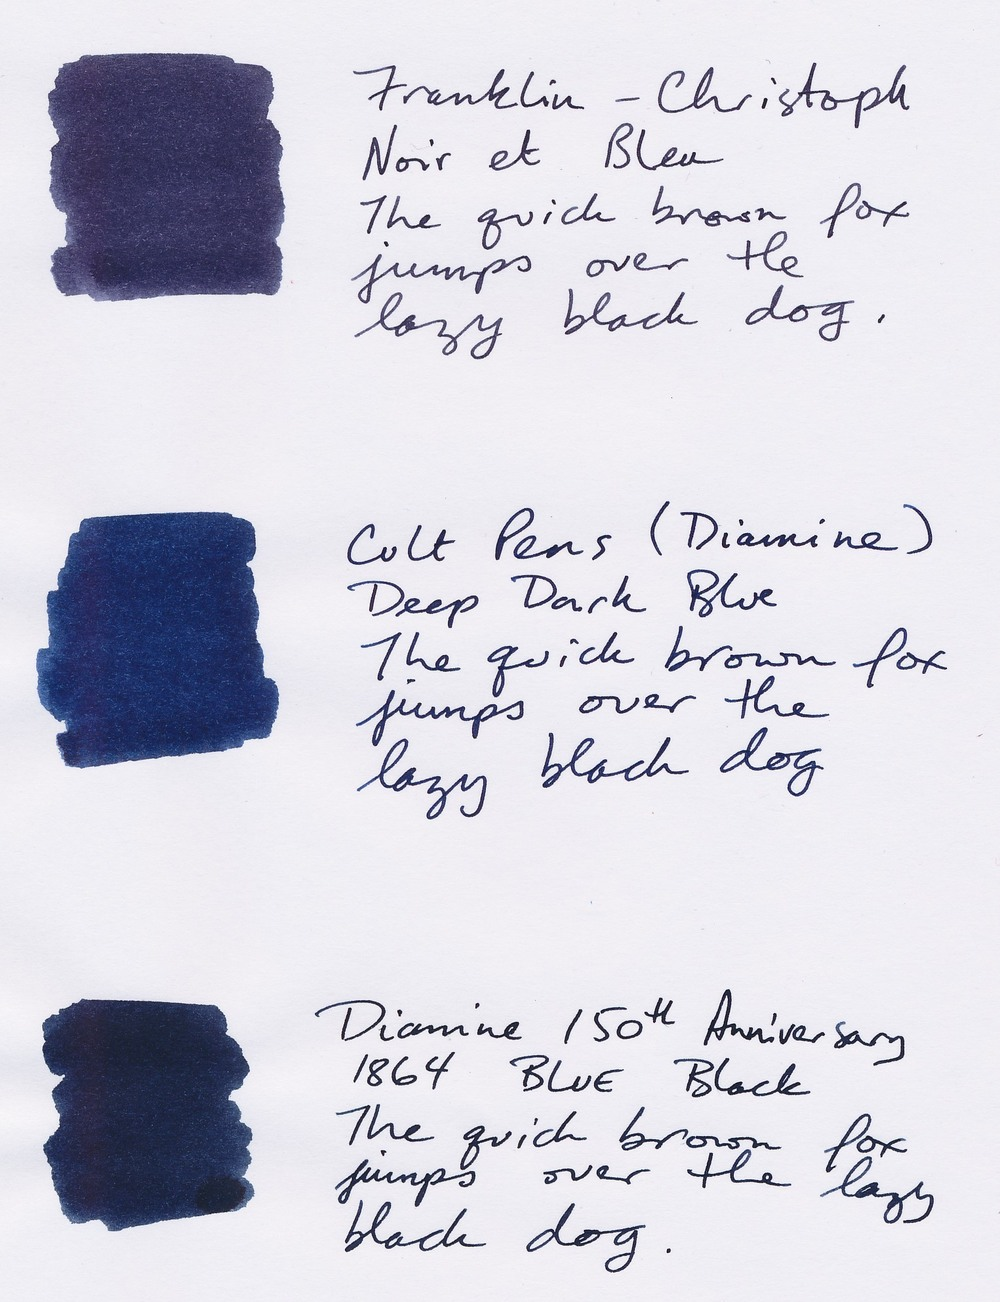 Franklin-Christoph Noir et Bleu Cult Pens Deep Dark Blue Diamine 1864 Blue Black